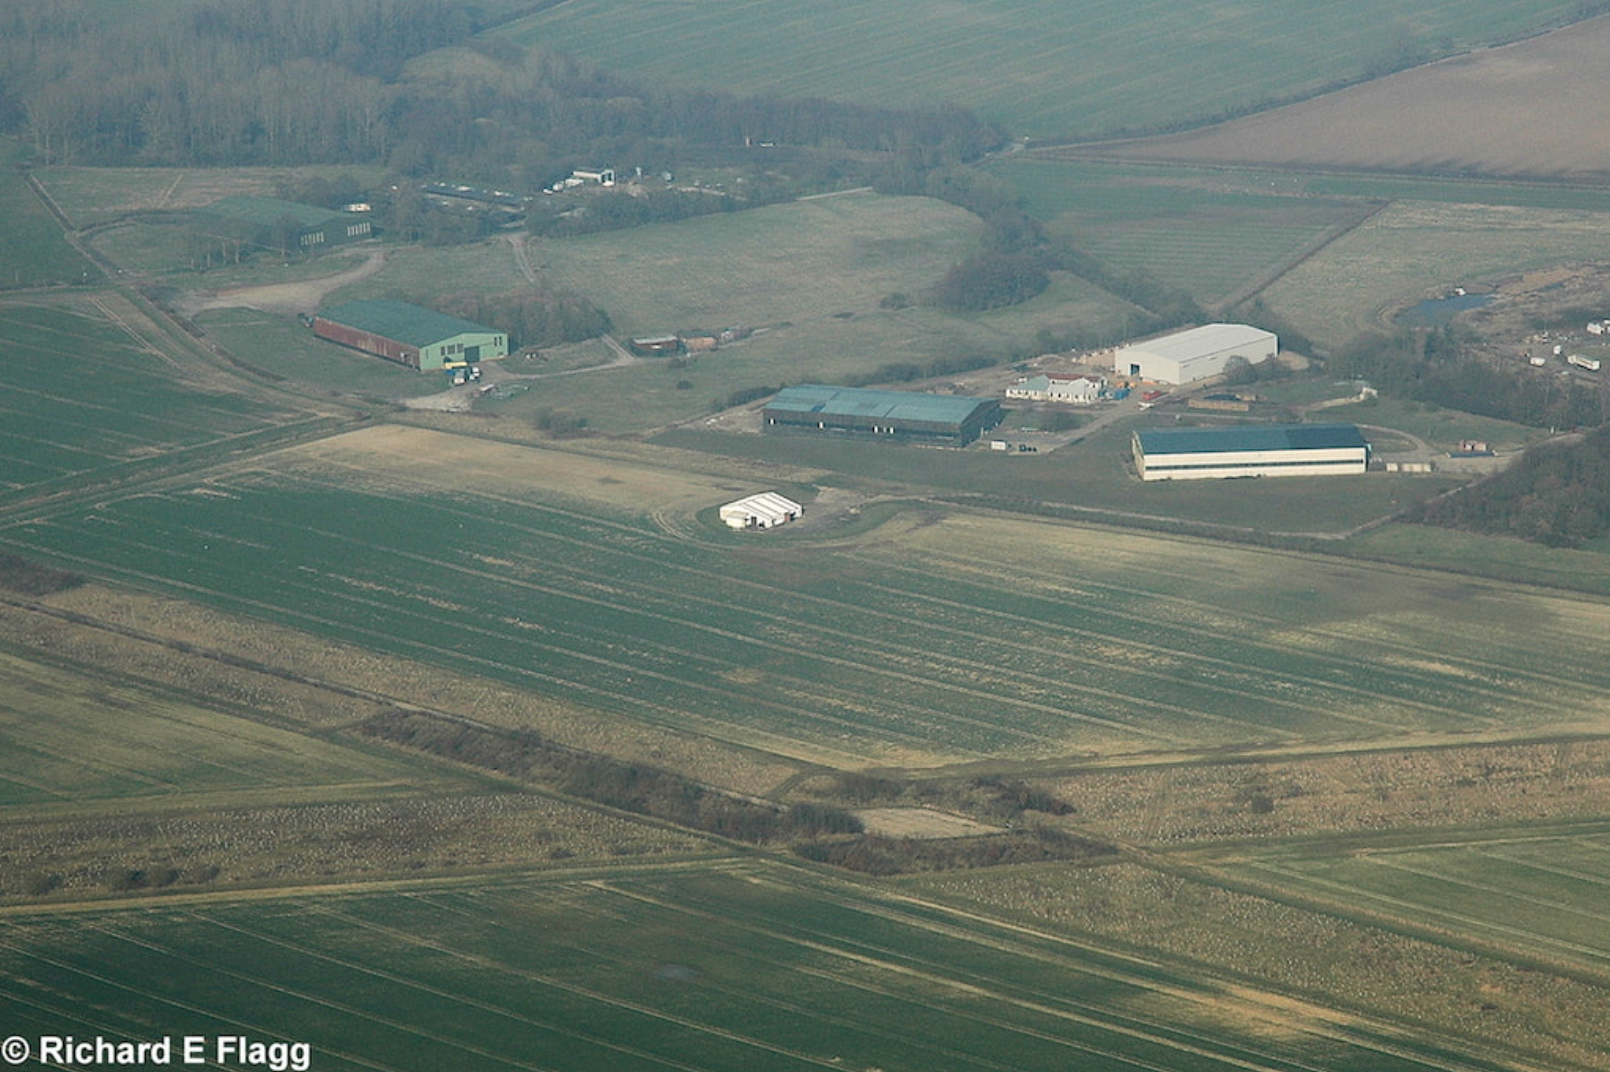 016Aerial View 2 of RAF Foulsham Airfield - 21 March 2009.png